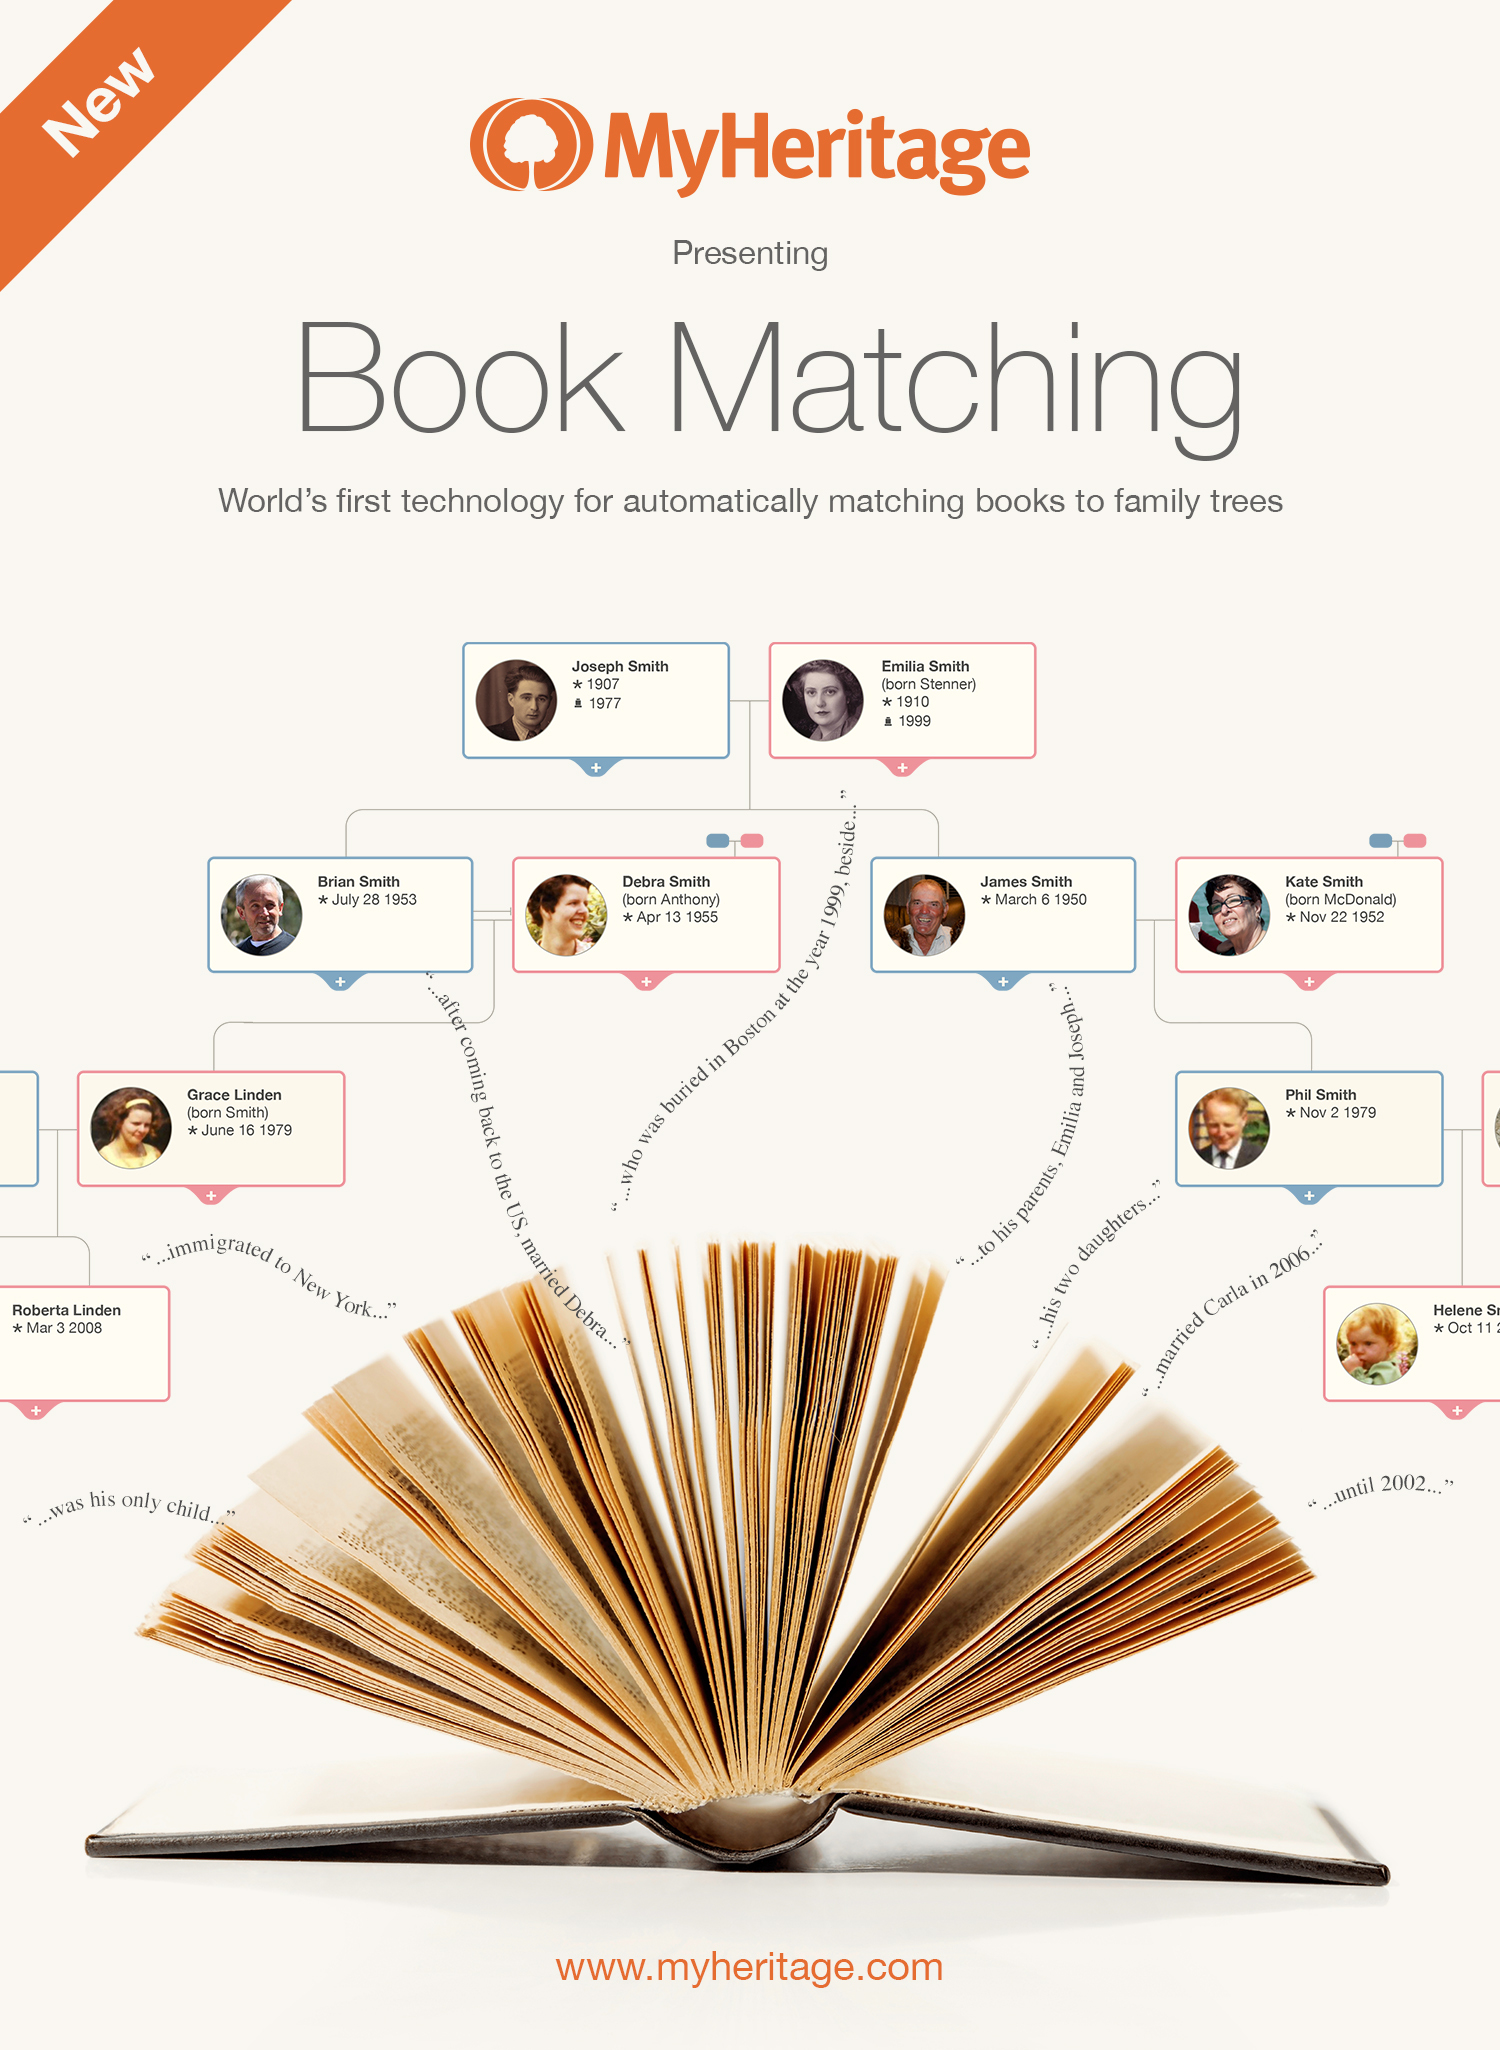 myheritage releases exclusive book matching technology for family